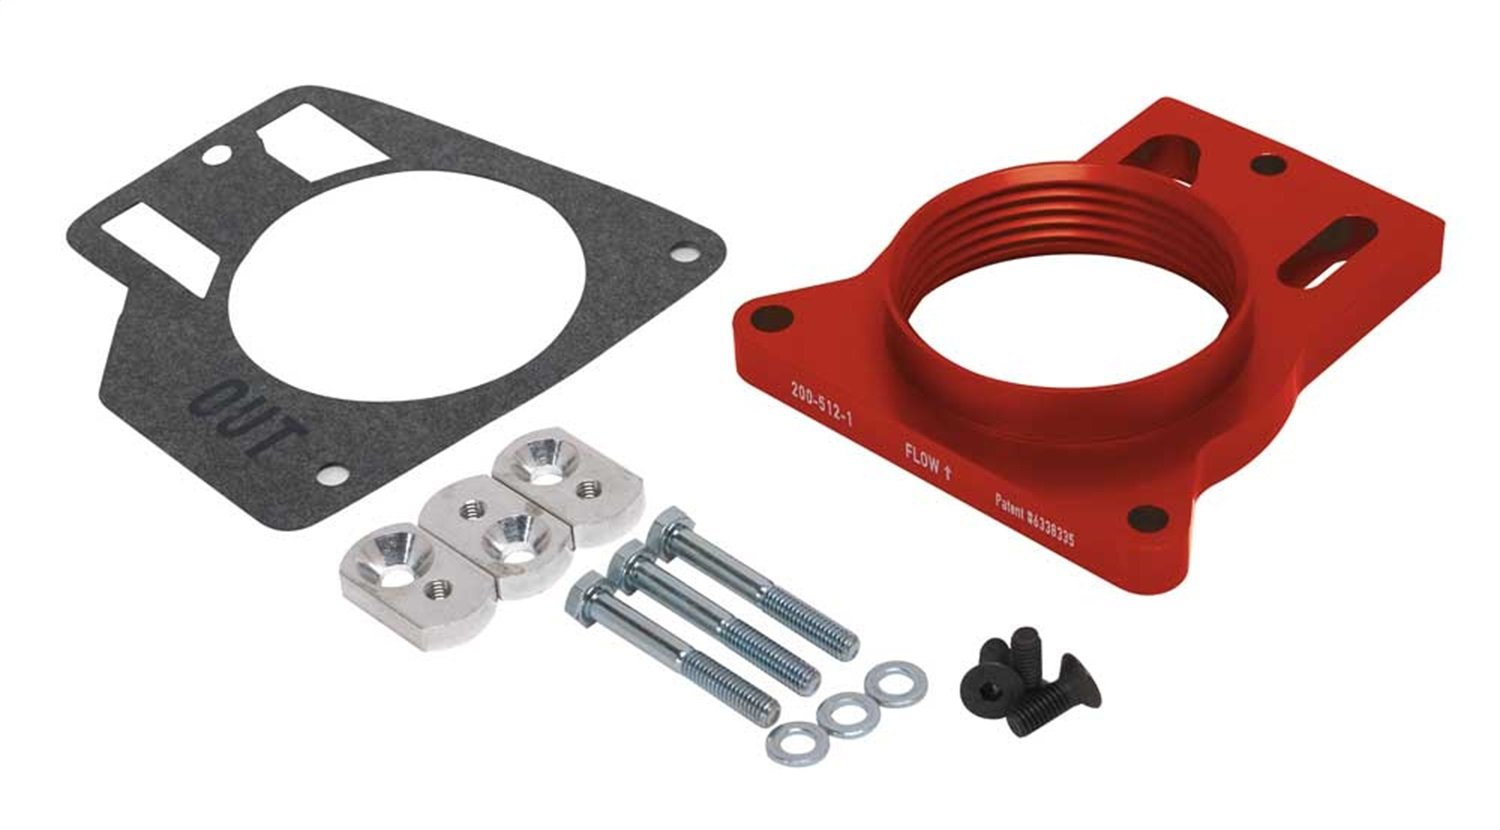 Airaid throttle Body Spacer 200-512-1 99-06 Silverado 4.8,5.3,6.0l by Airaid